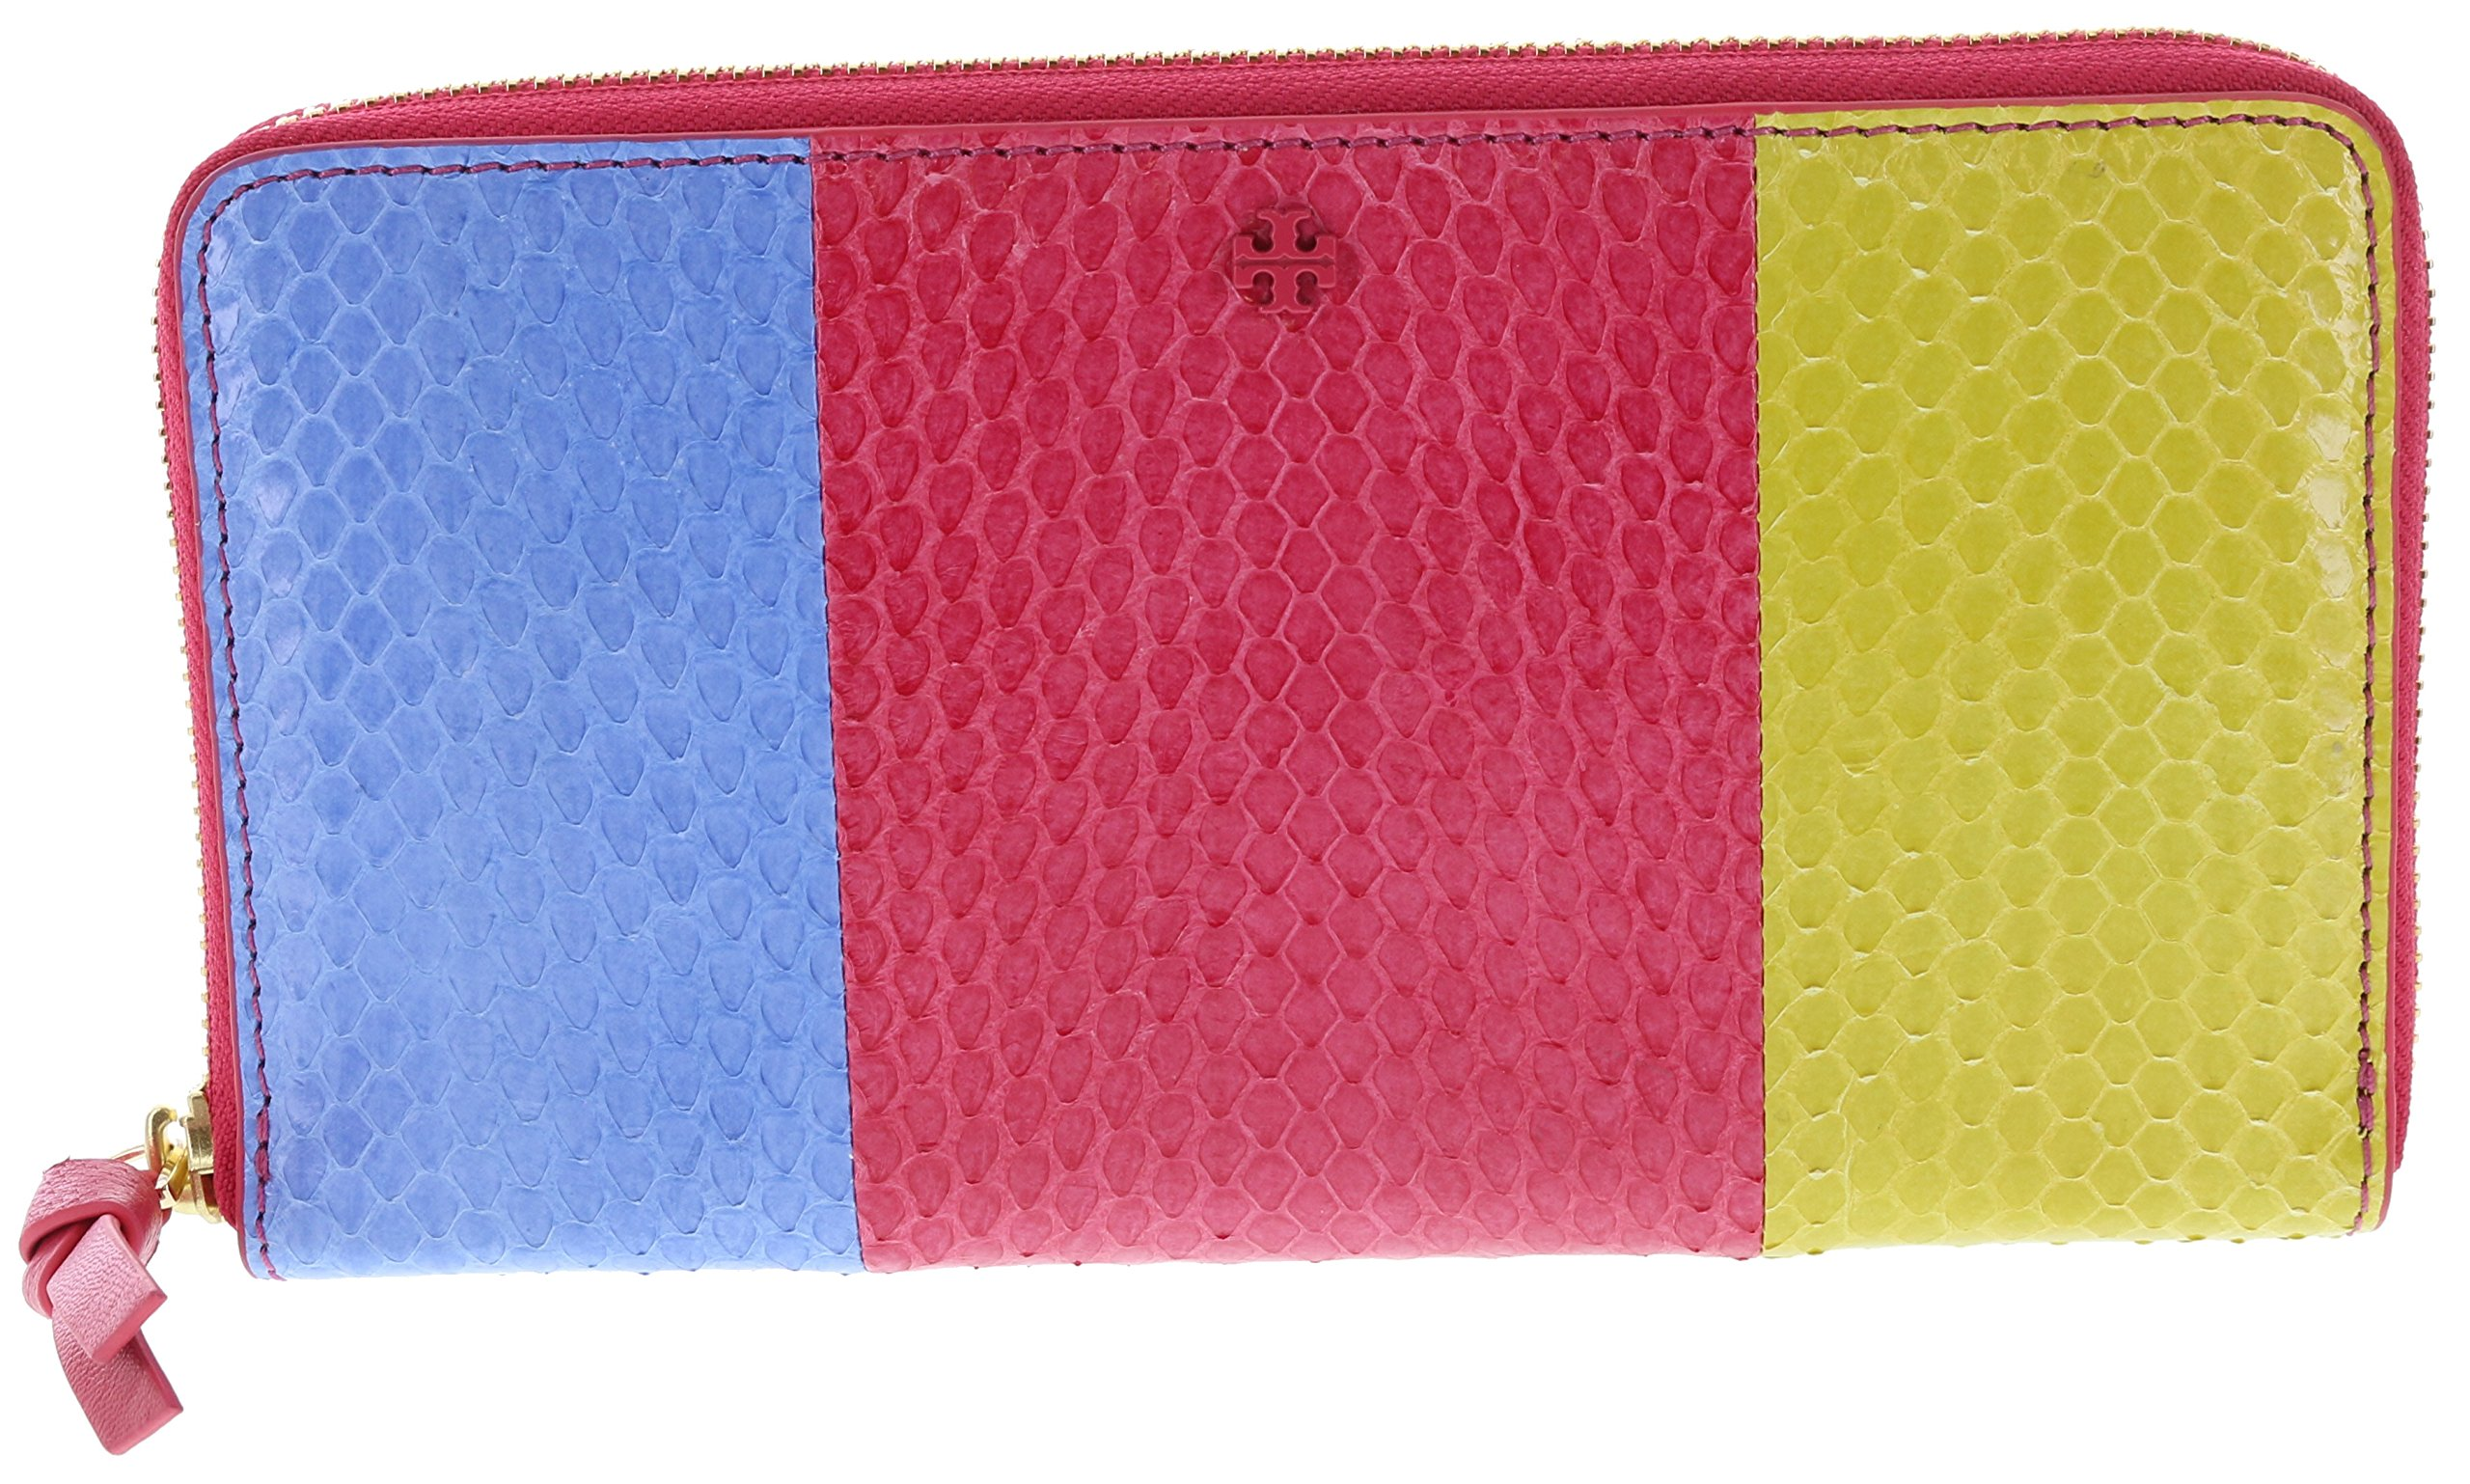 Tory Burch Multi Snake Zip Leather Continental Wallet, Style No. 30837 (Multi)